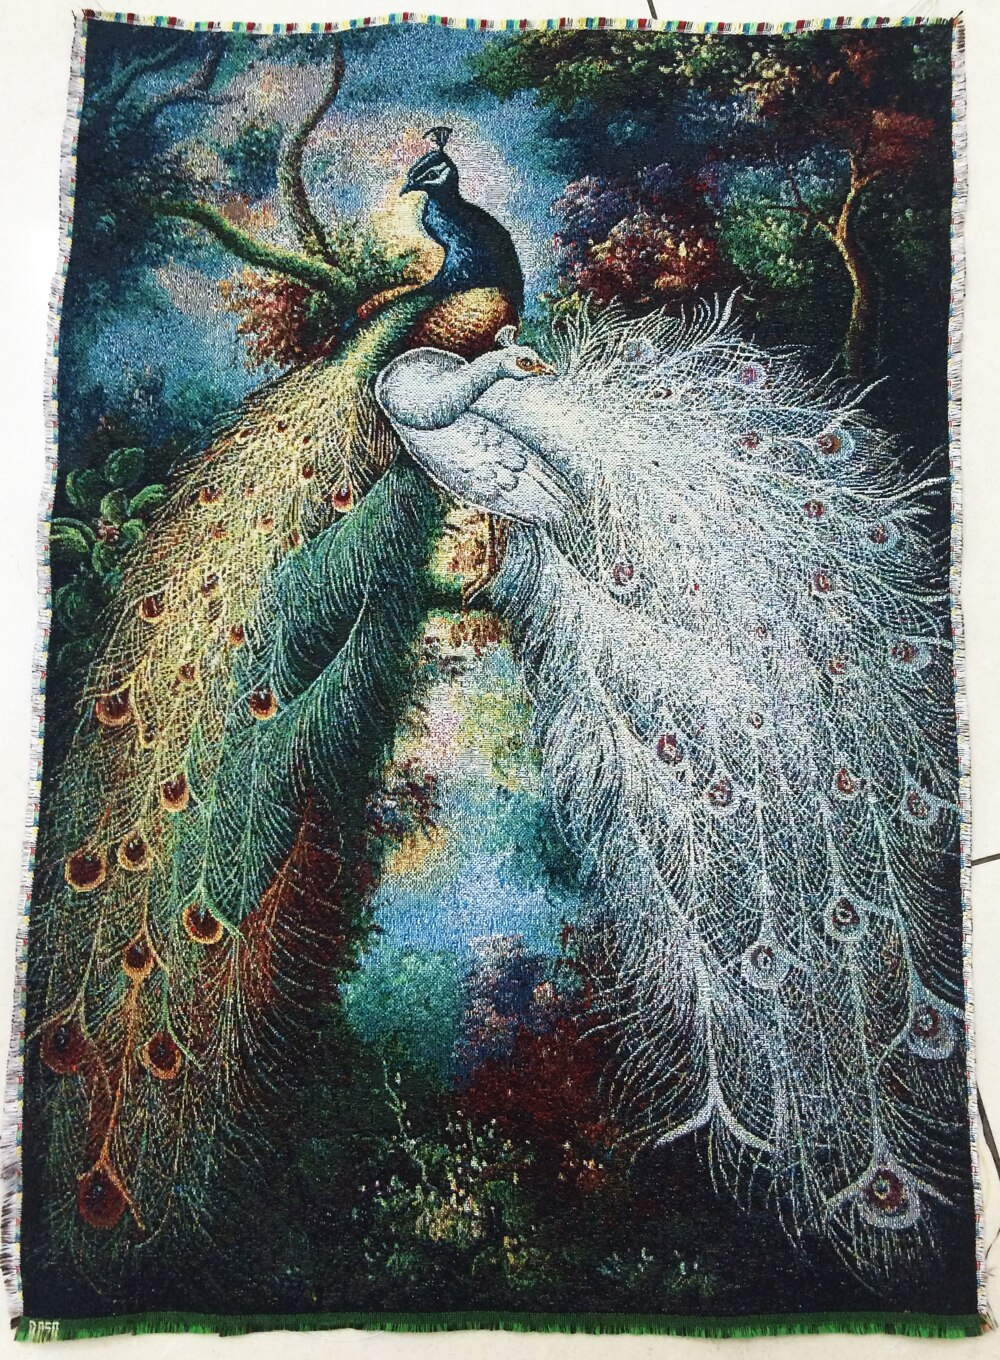 Free Shipping Hot Sales Middle Size Gobelin Tapestry, Beautiful Peacock Fabric Picture,wall Hanging Fabric Pictures Pertaining To Newest Blended Fabric Peacock European Tapestries (View 6 of 20)